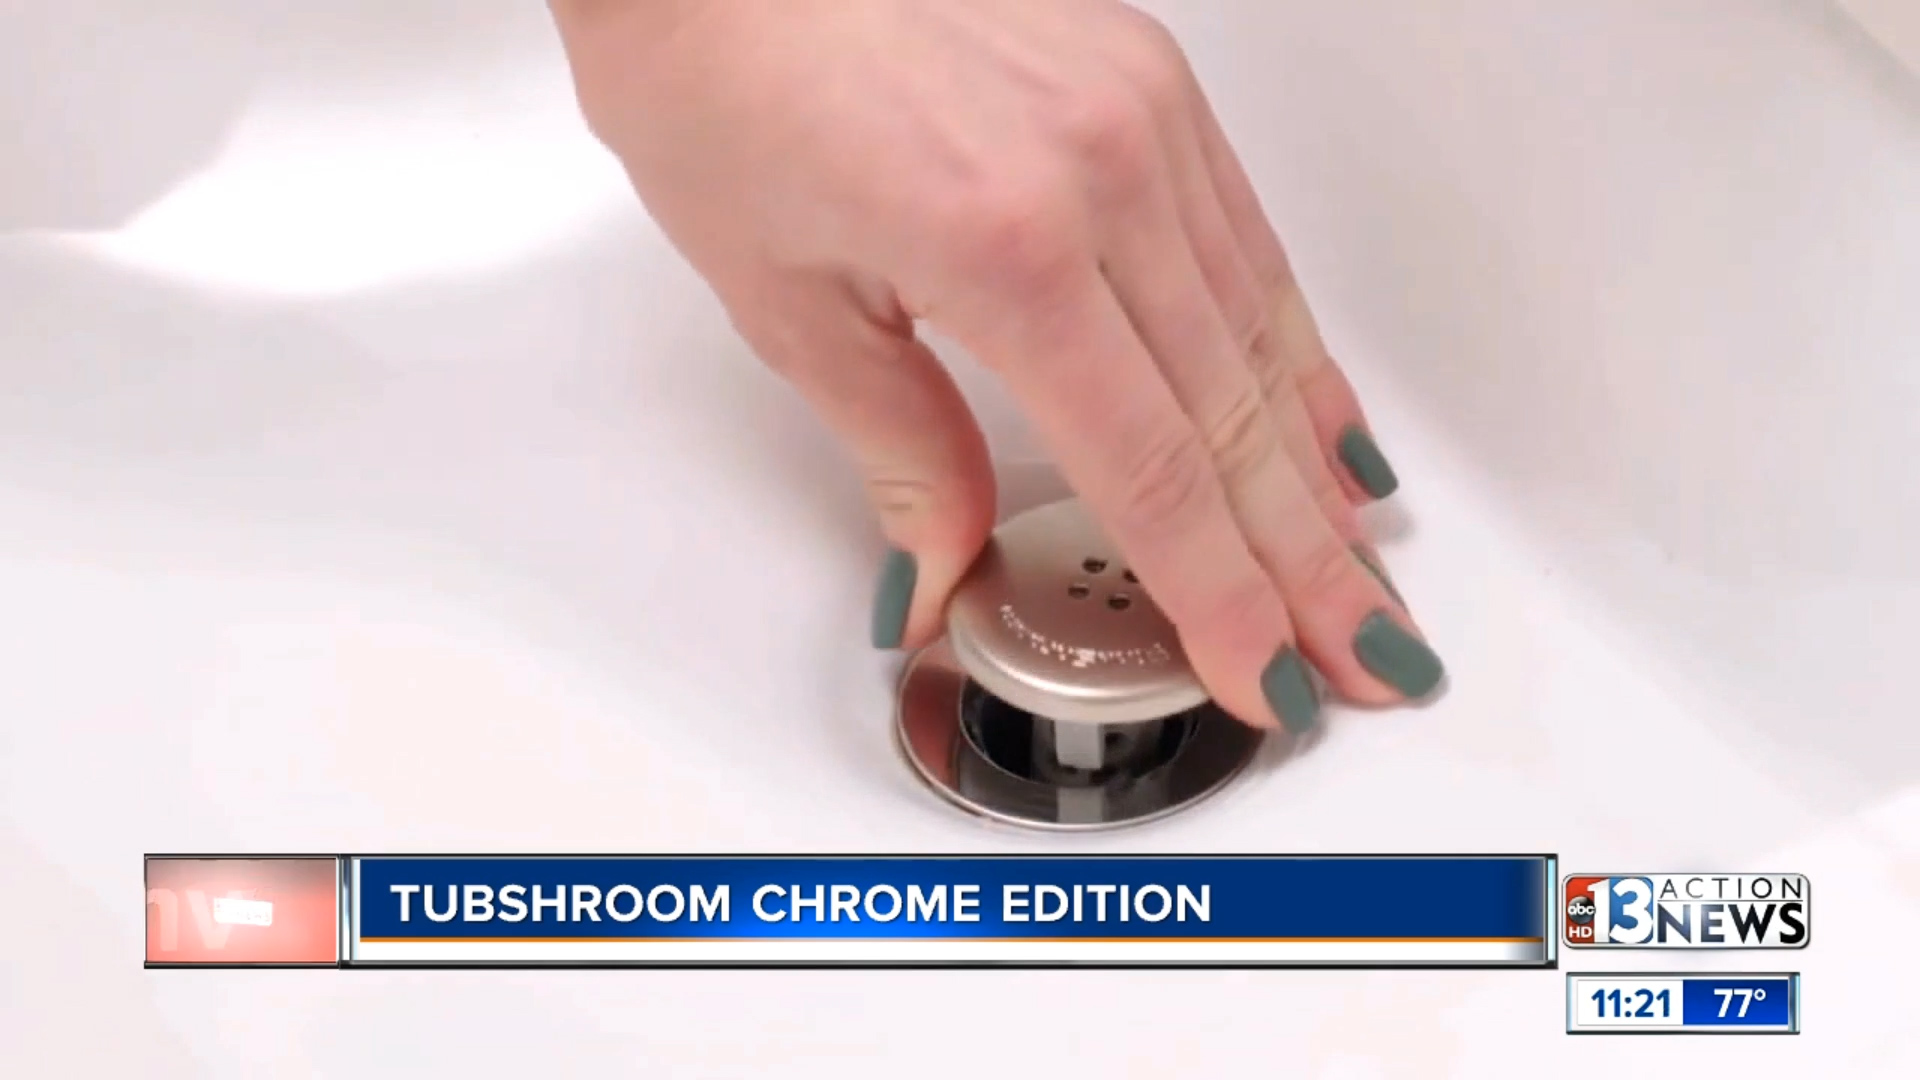 TUBSHROOM CHROME EDITION – BLACK OR CLEAR - $12.99Shop Now